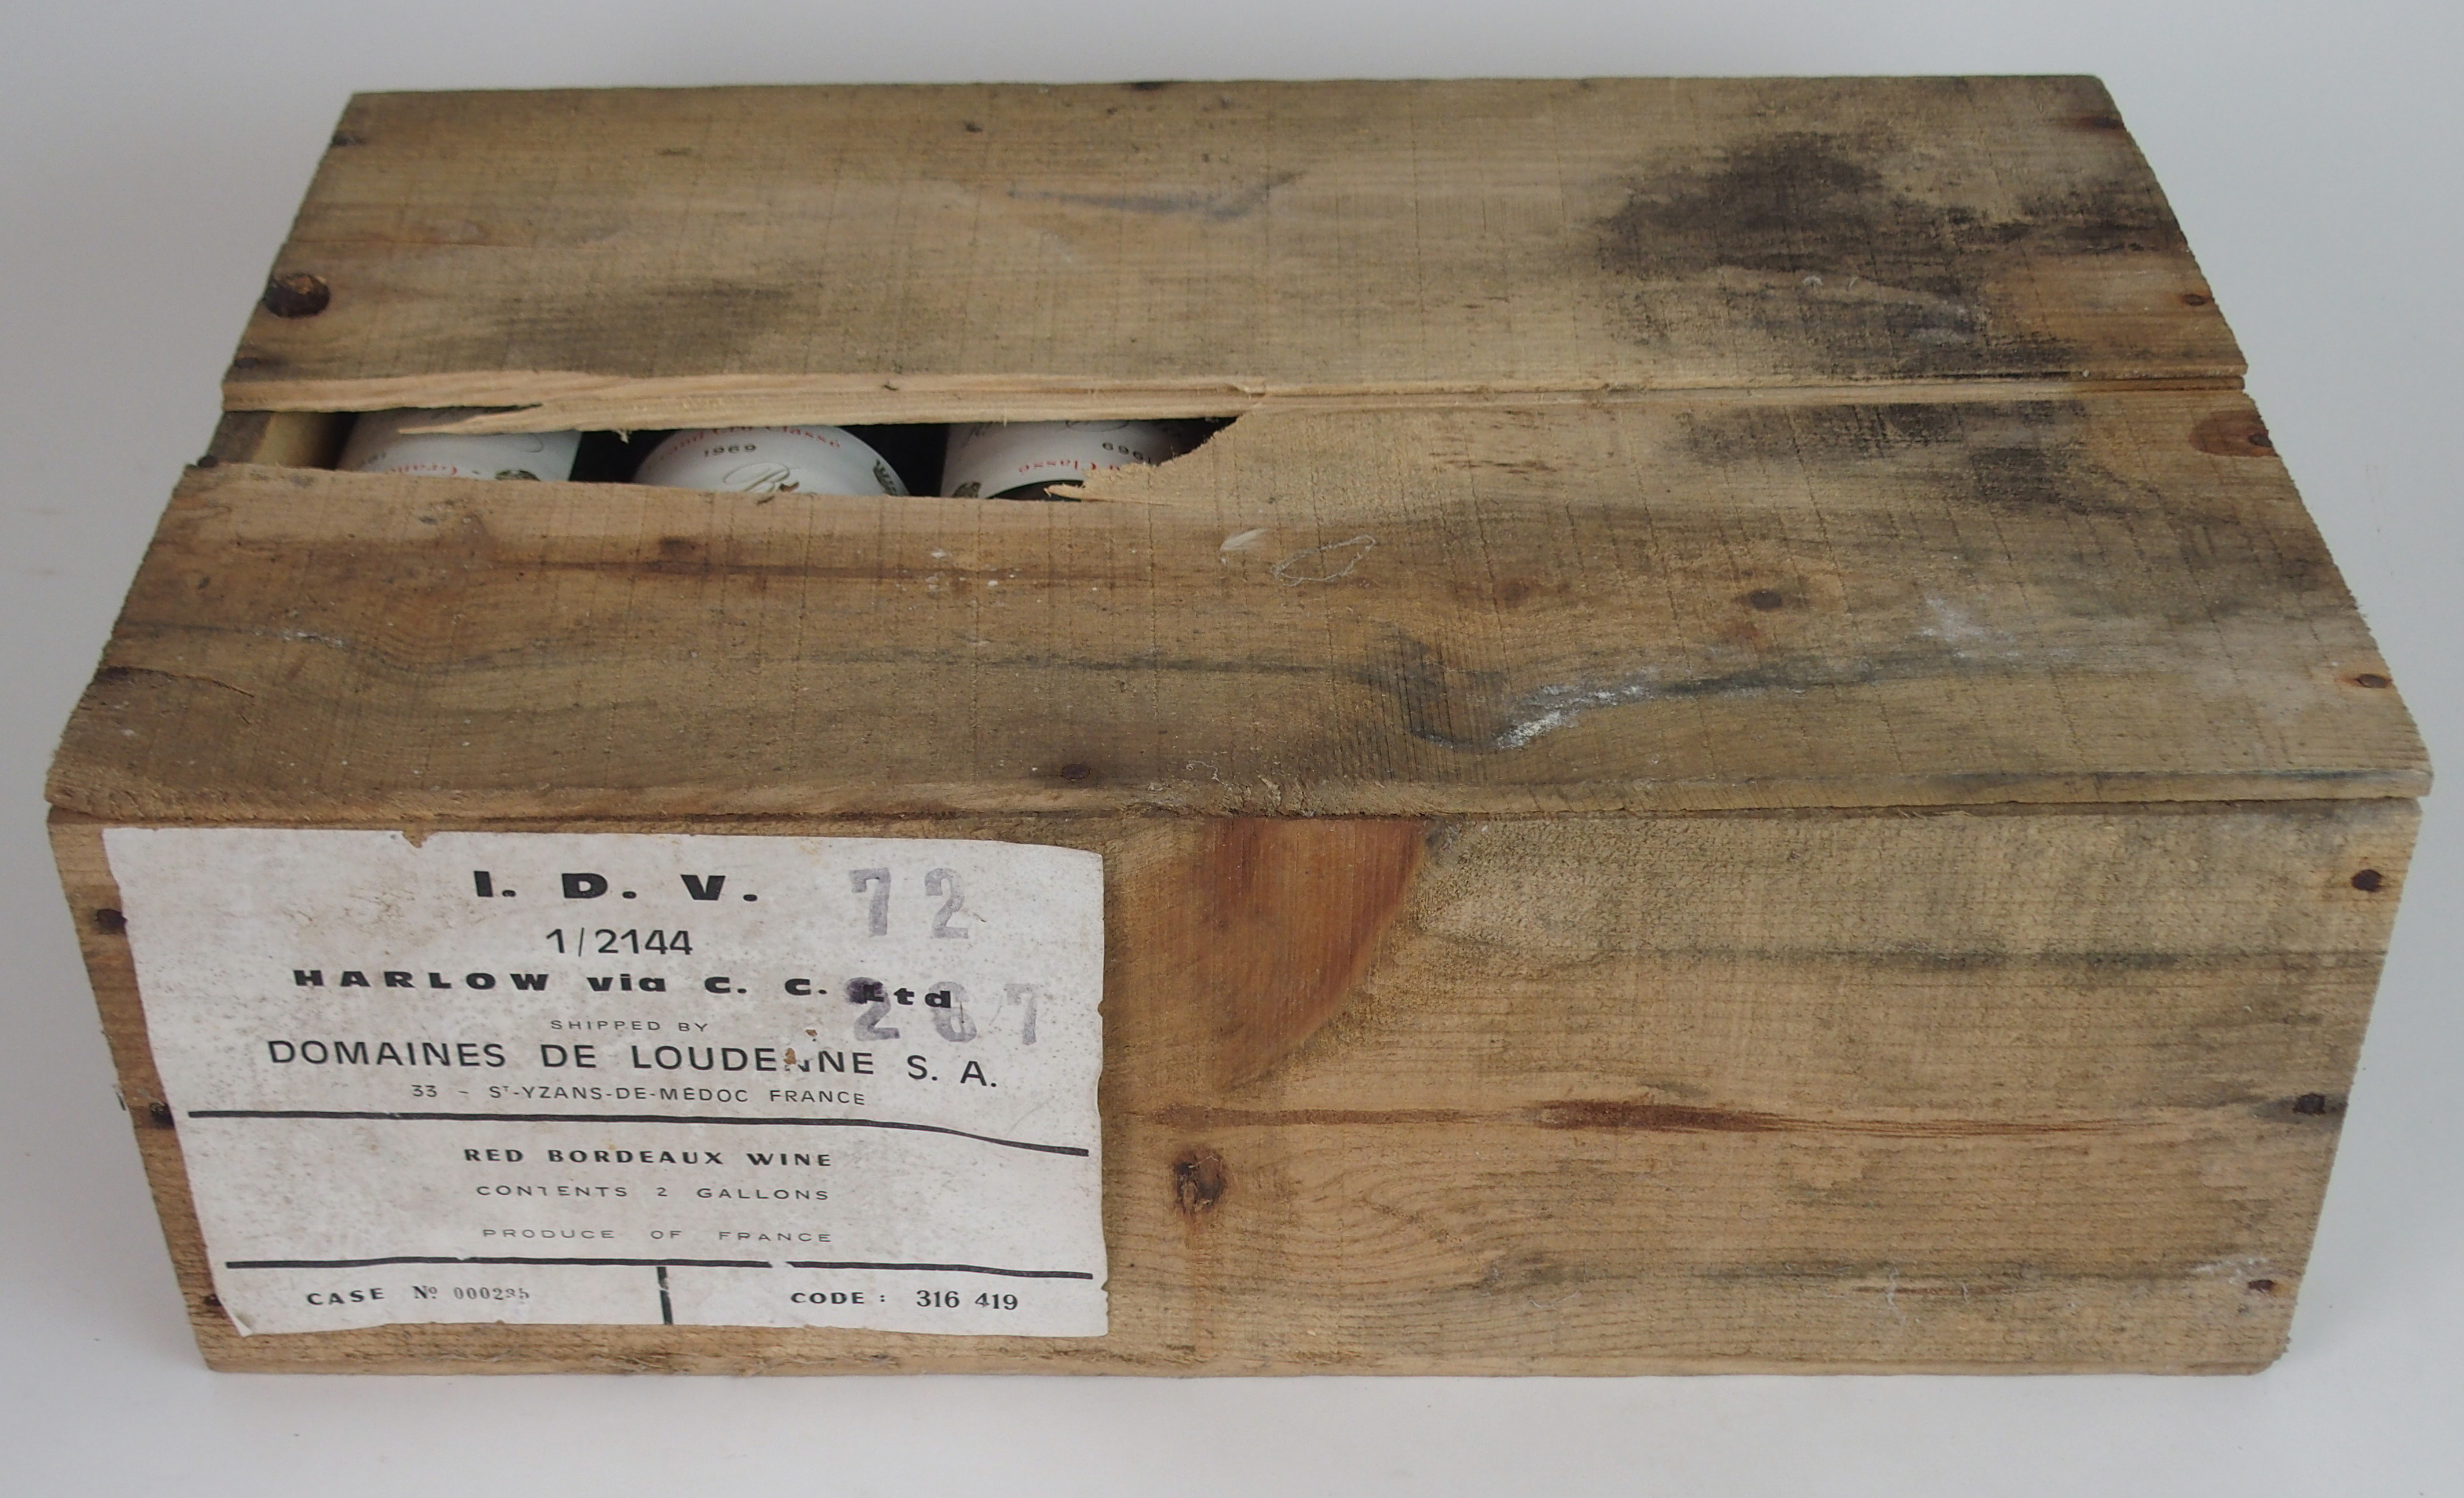 A CASE OF CHATEAU BRANAIRE DULUC DUCRU, ST. JULIEN, 1969 in wooden case Condition Report: - Image 2 of 5